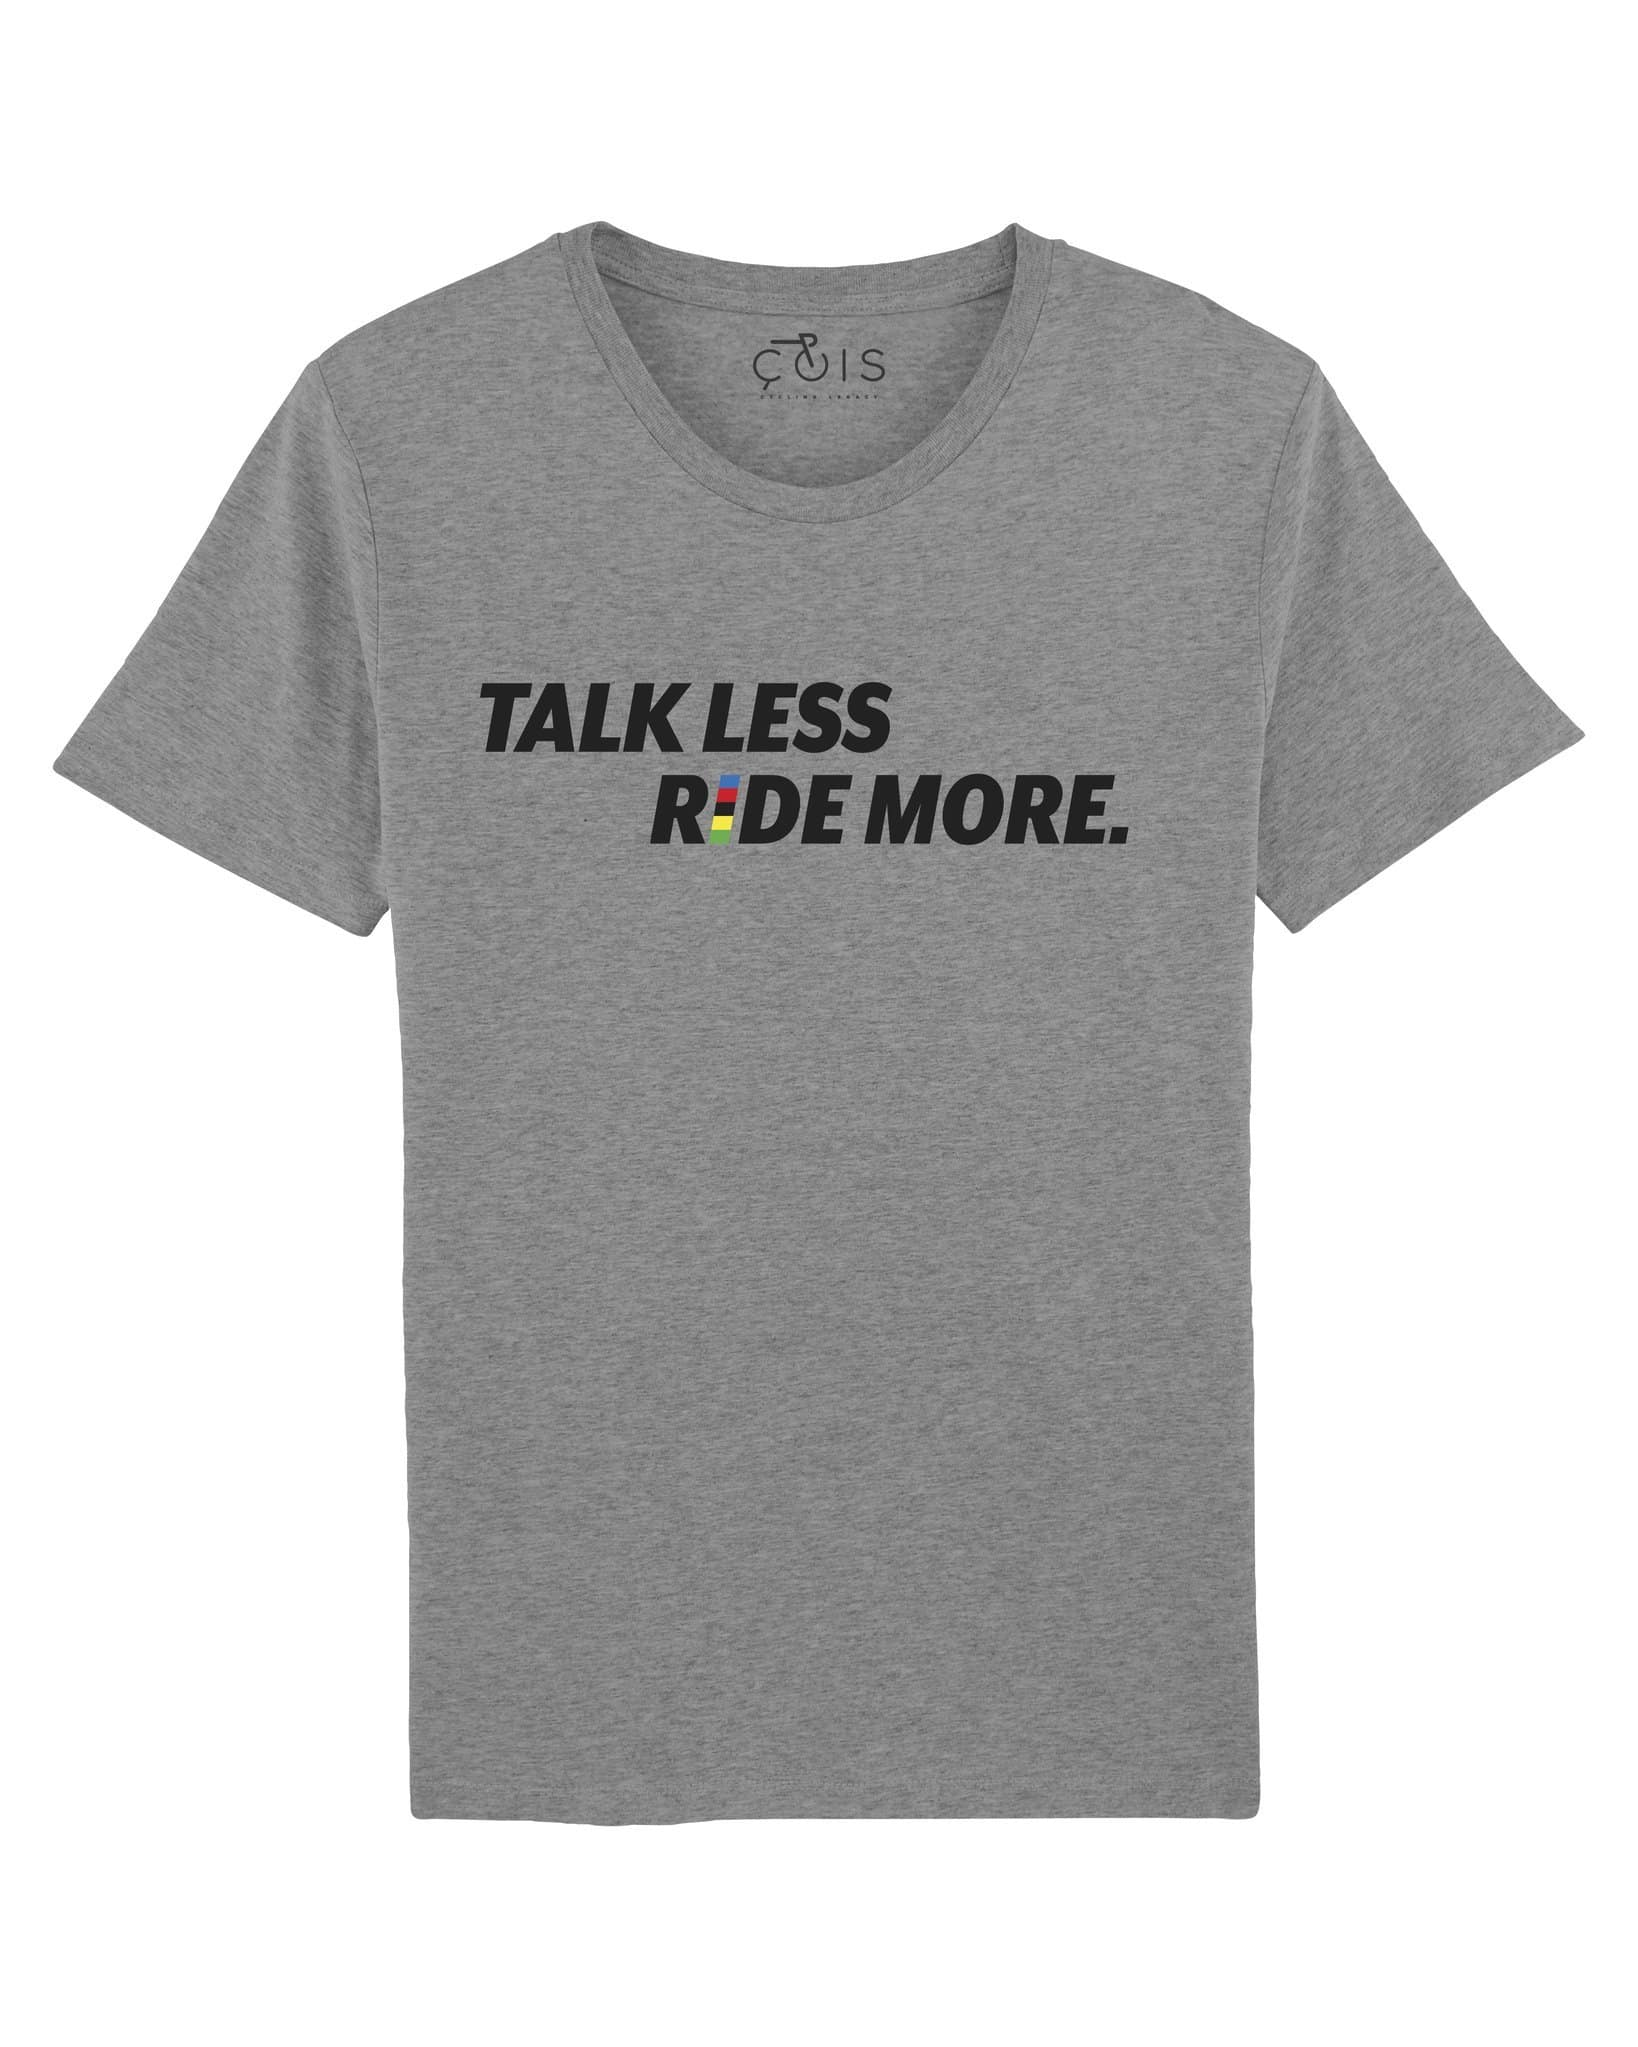 ÇOIS Talk Less, Ride More Cycling T-shirt